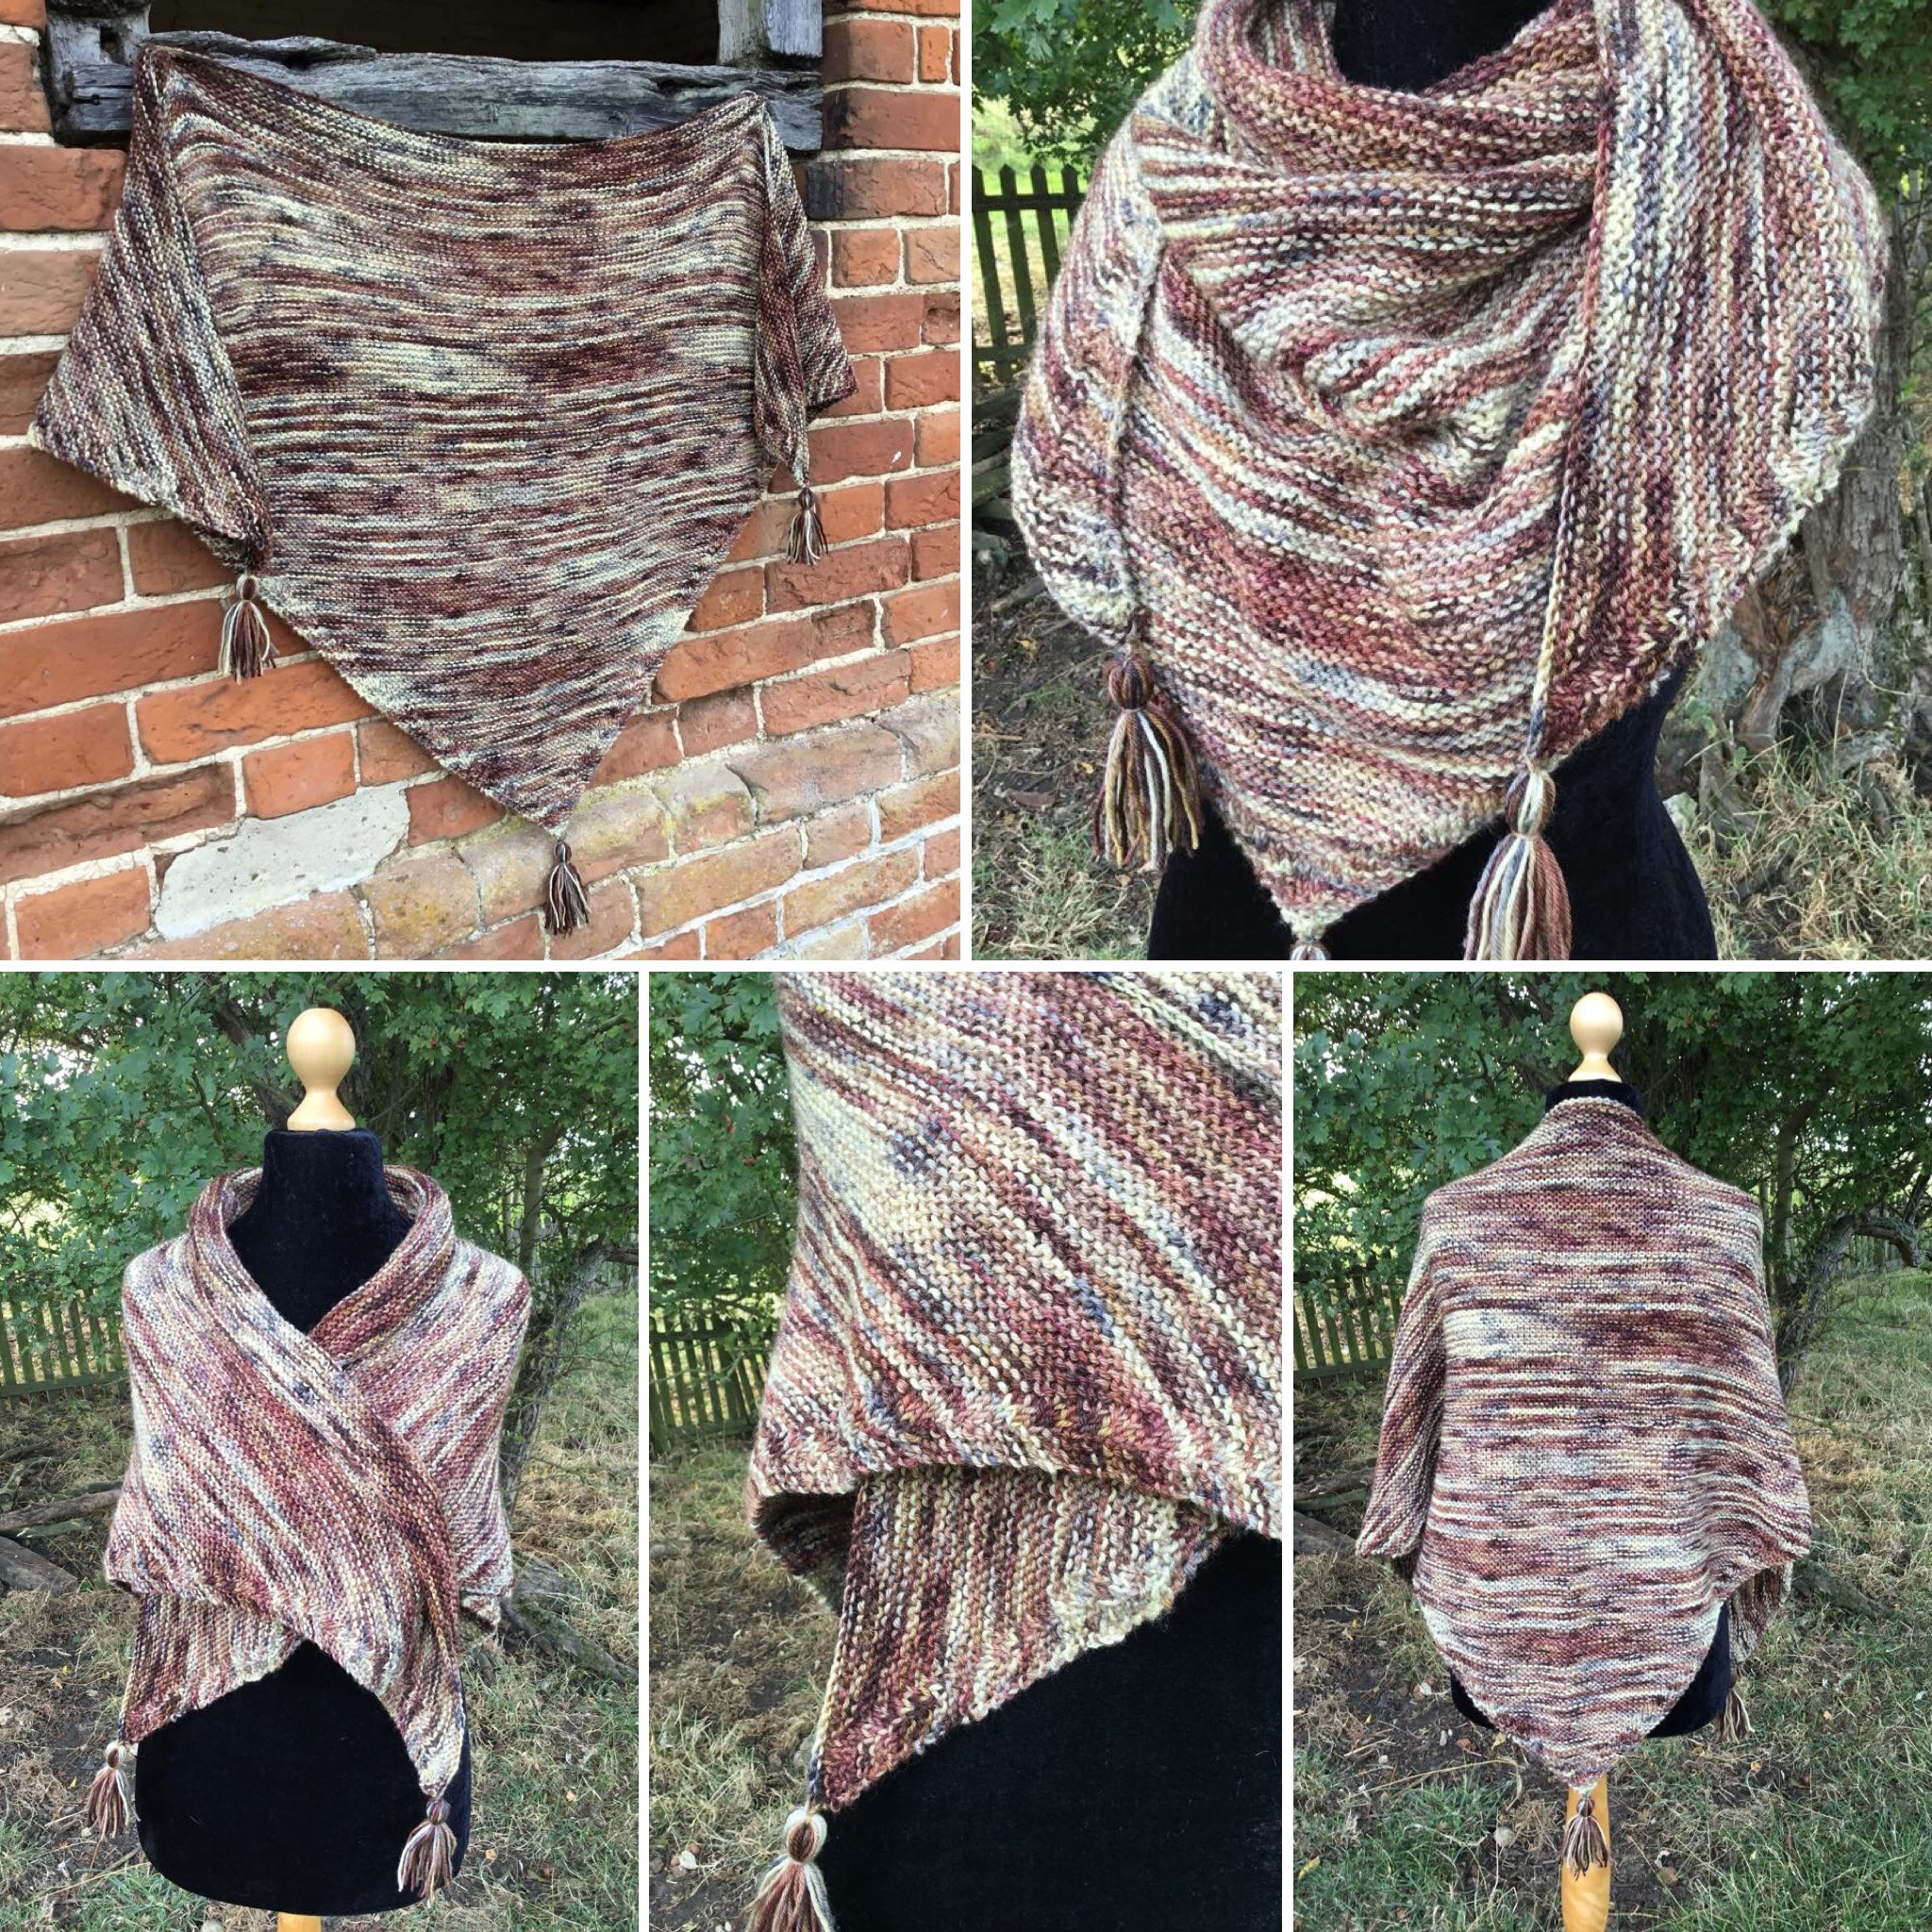 My Sassenach - This is one of the new designs by Kate Whiting for the Fall 2018 Outlander KAL/CAL. This pattern is now available. Requirements:700m of DK weight yarn (3-4 skeins),**Please pay attention to the length of your selected yarn as different bases vary in length**Pattern includes instructions on modifying for various sizes/amounts of yarn.As Shown: 3 Skeins of The Faithful Companion in BFL DKCustom Order preferred color/base HERE